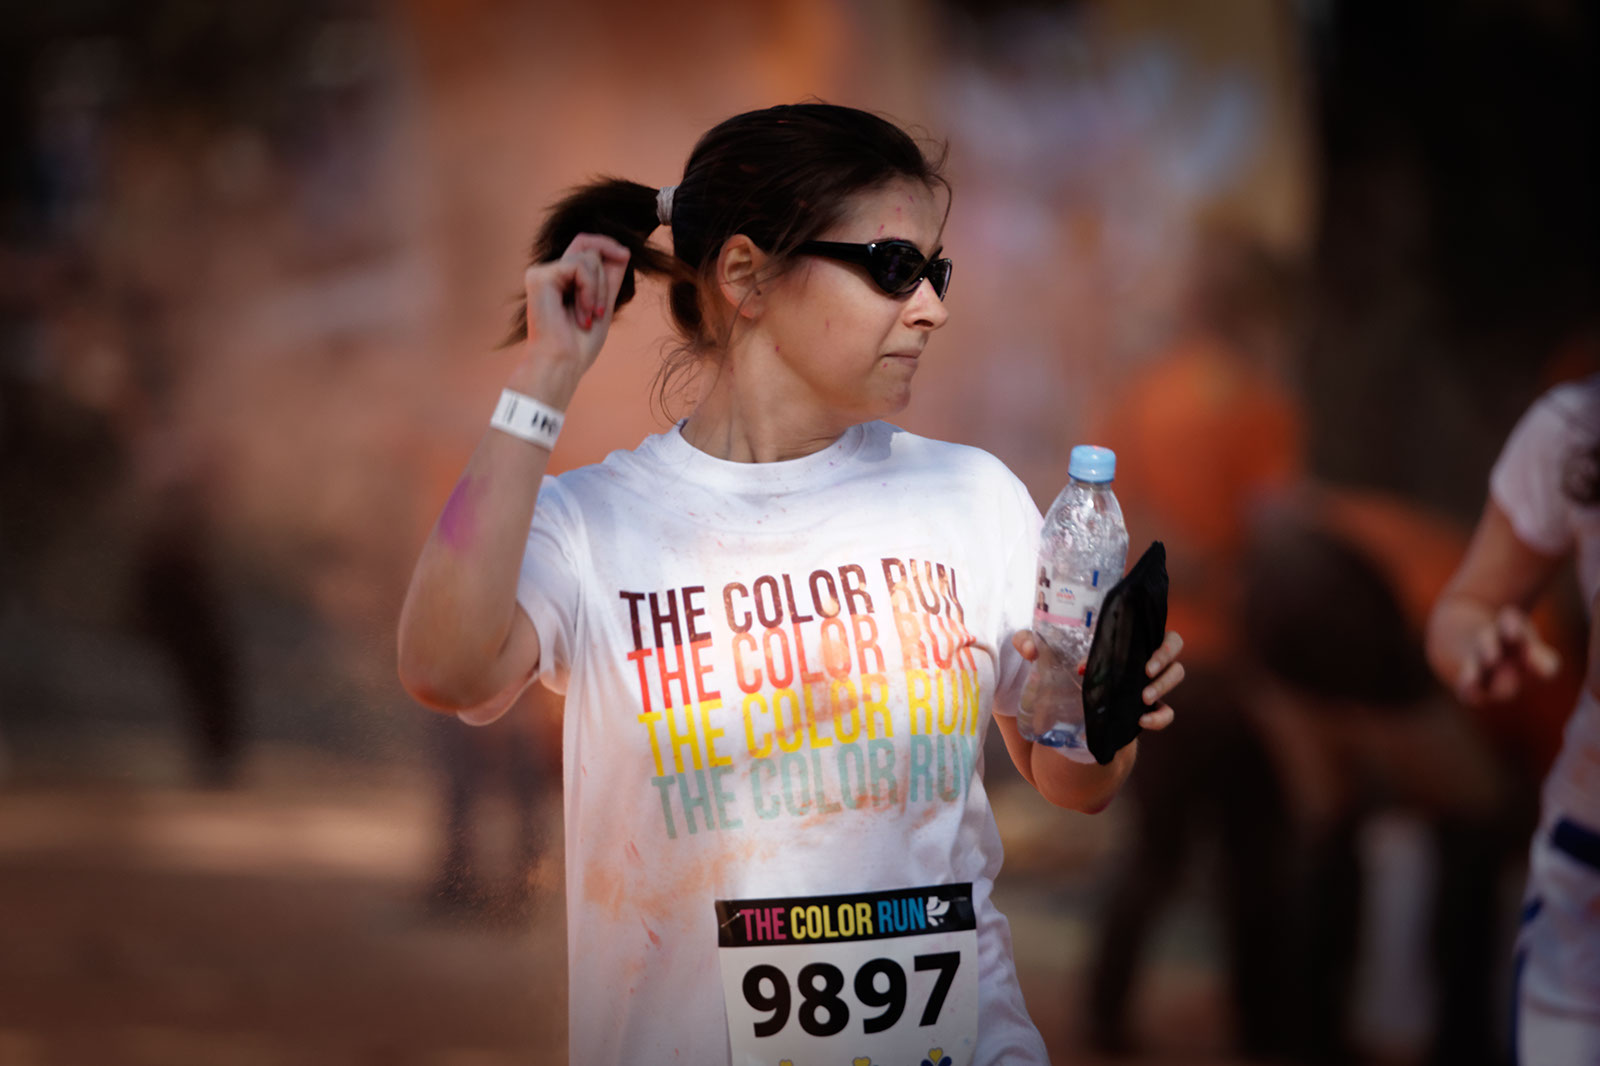 The Color Run (Brussels), September 2013